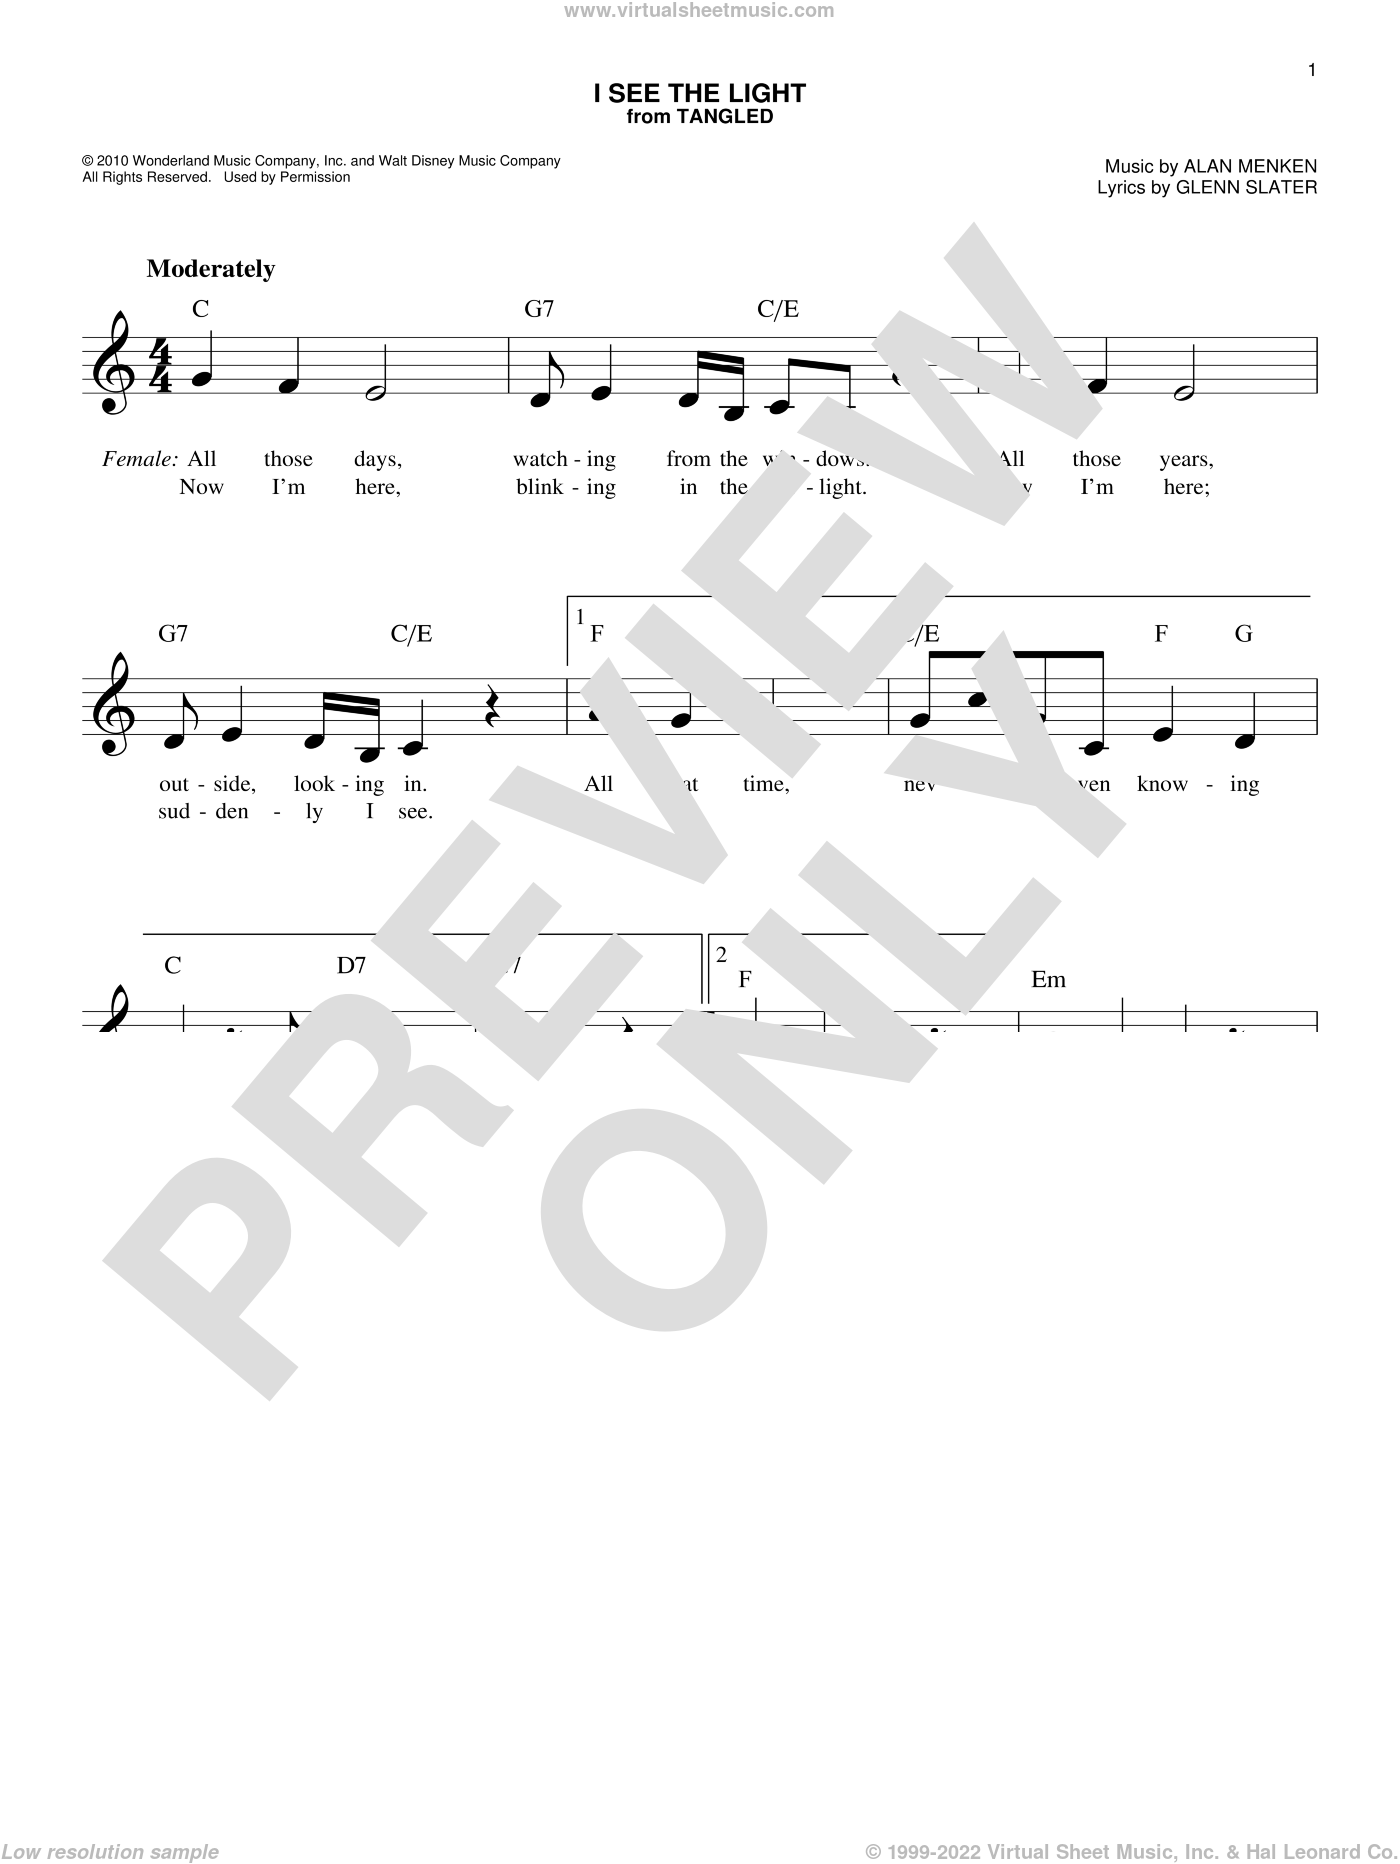 I See The Light sheet music for voice and other instruments (fake book) by Alan Menken and Glenn Slater, intermediate skill level